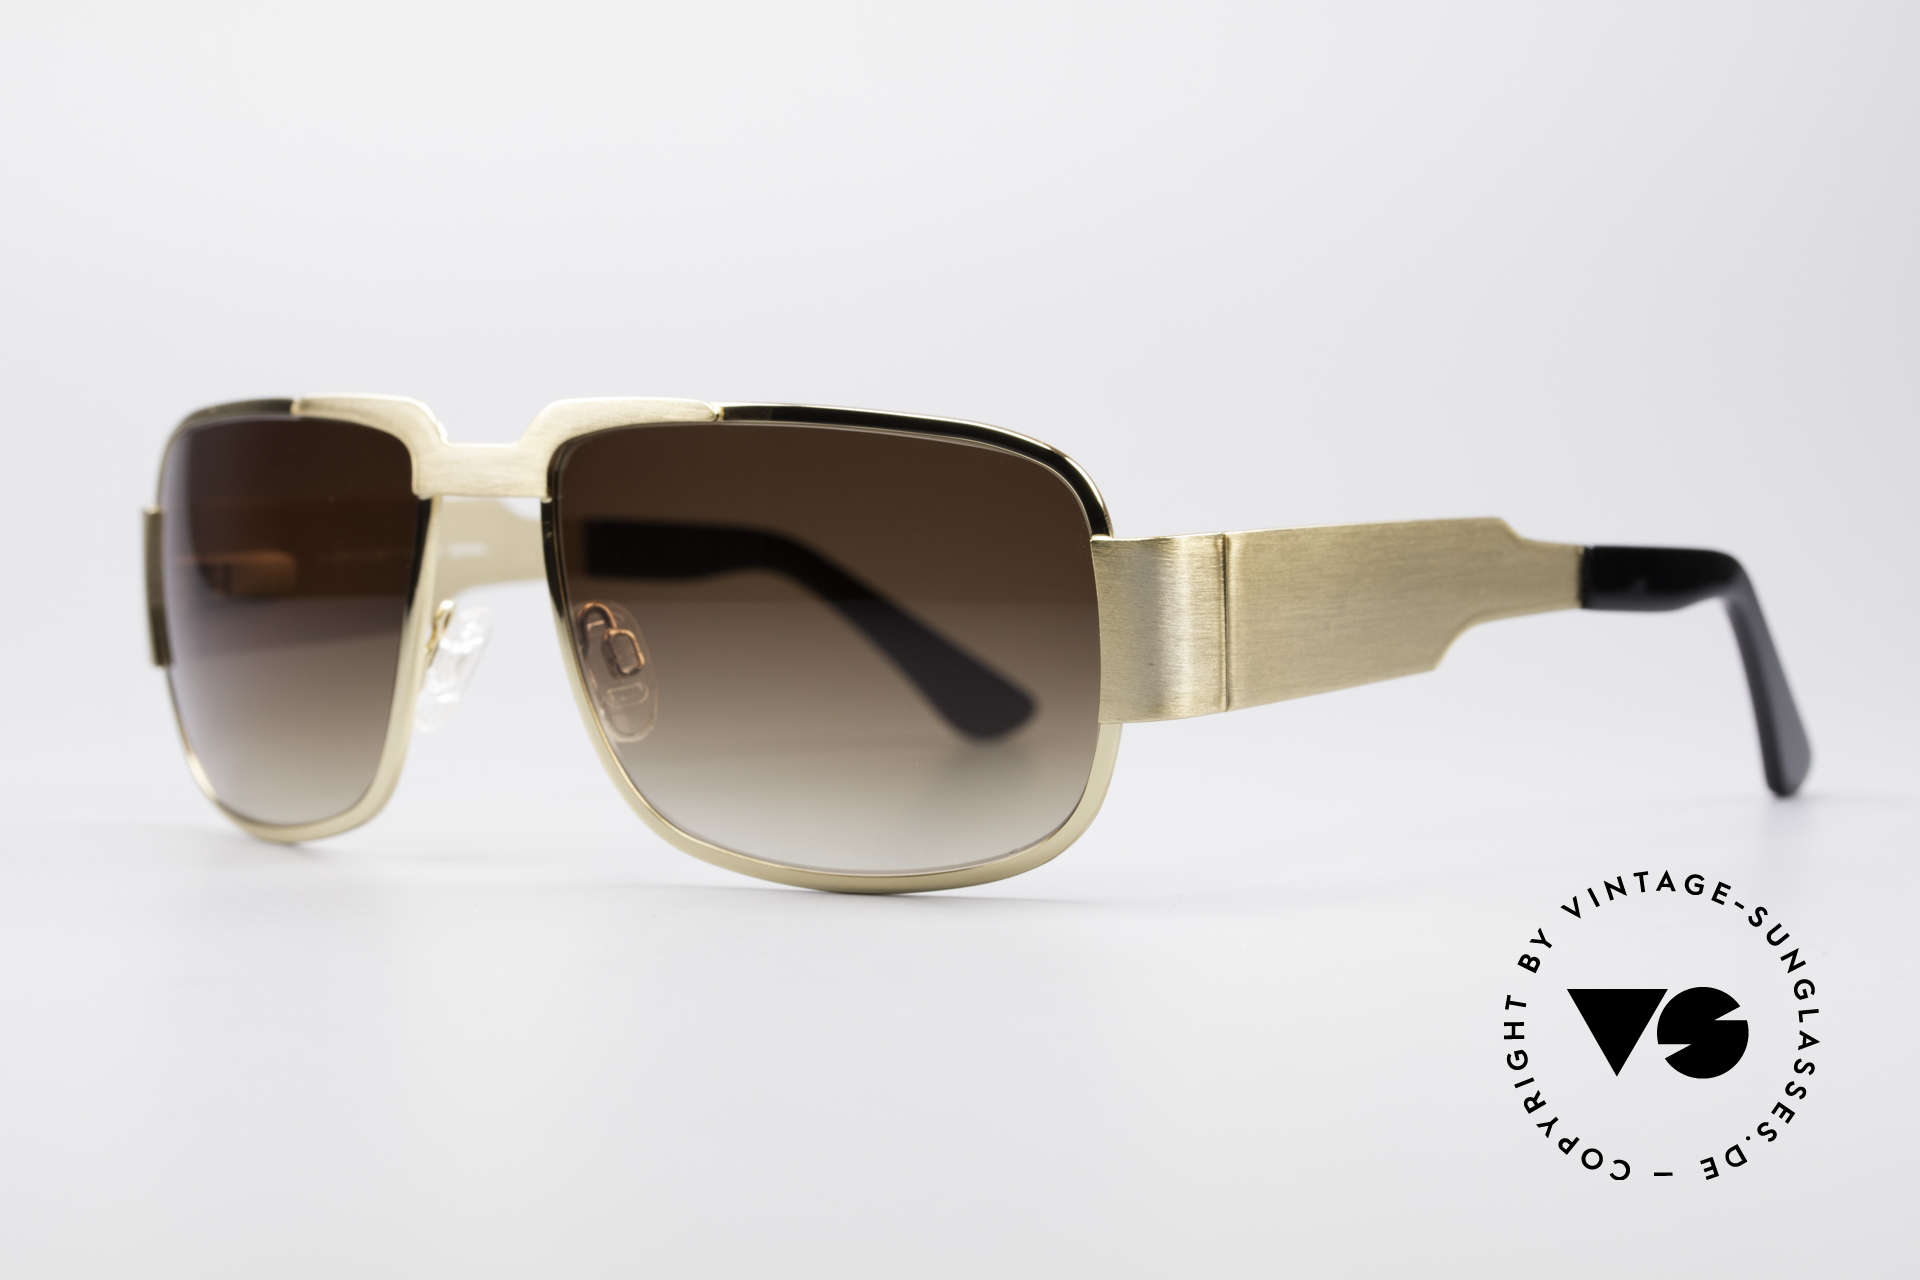 Neostyle Nautic 2 Elvis Presley Sunglasses, massive frame with flexible spring hinges & brown lenses, Made for Men